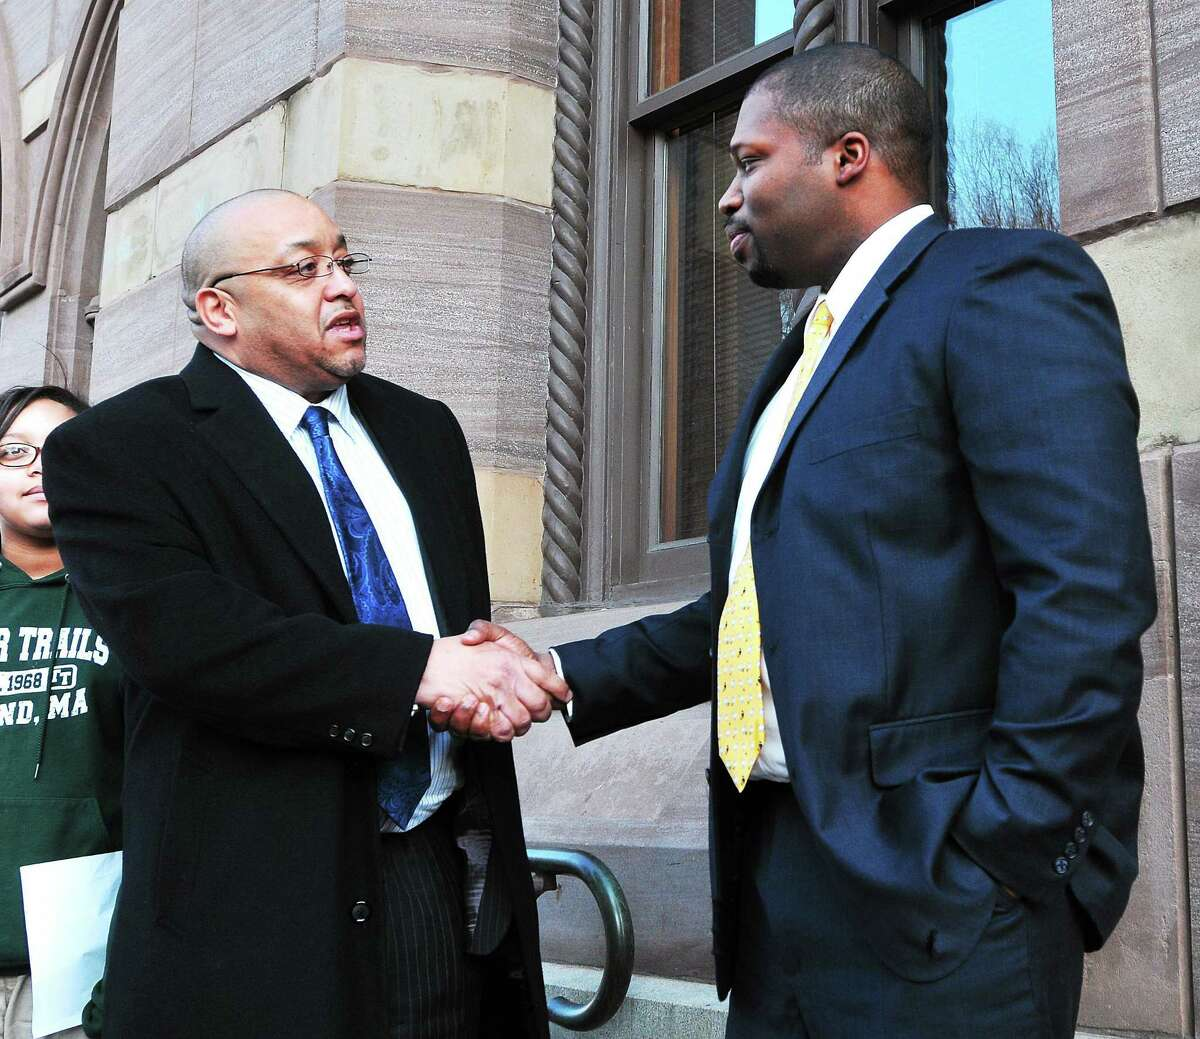 (Peter Casolino ó New Haven Register) Gary Holder-Windfield, right, gets a handshake from Darnell Goldson, after Goldson removed himself from the 10th district senate race in Connecticut. The two met outside New Haven City hall. Holder-Windfield is seeking the senate seat, formerly held by Toni Harp. pcasolino@NewHavenRegister